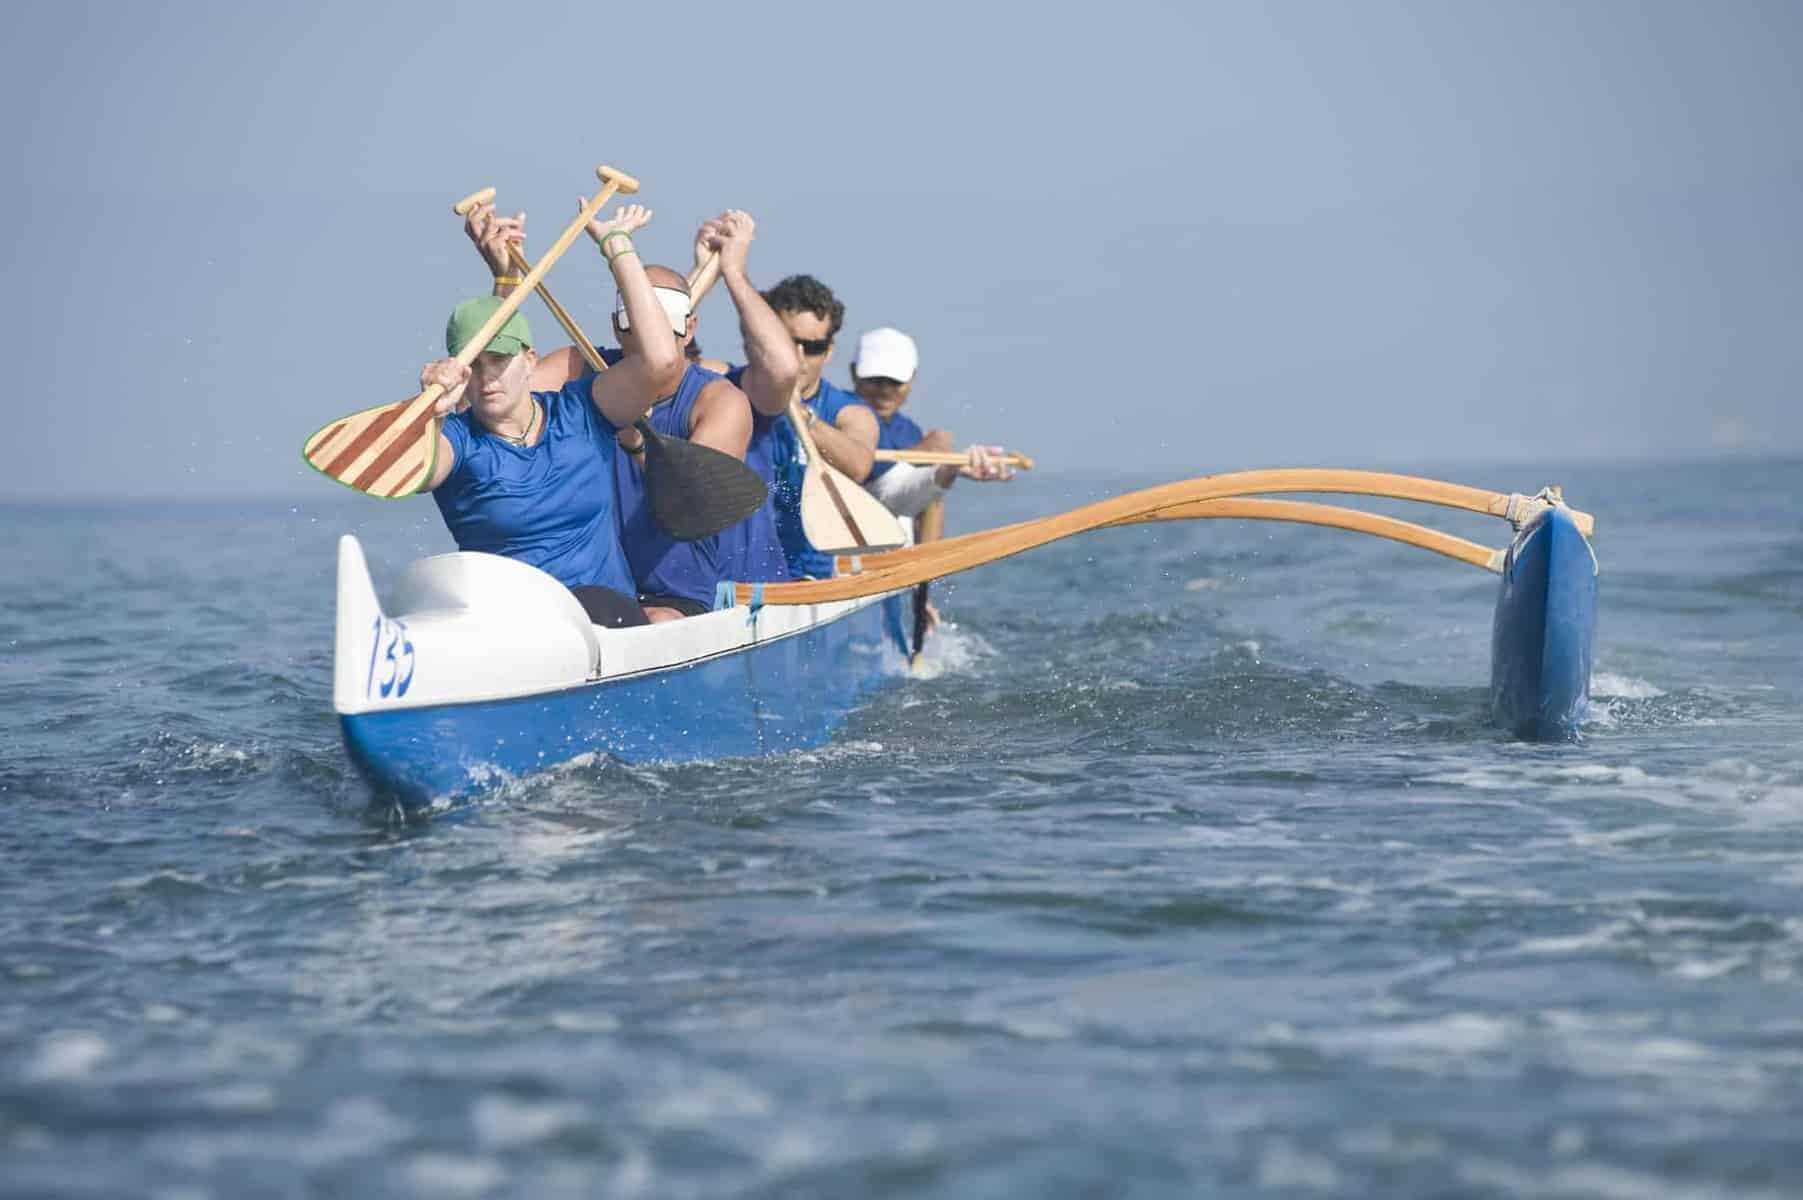 Kayaker in race canoe with outriggers and stabilizers